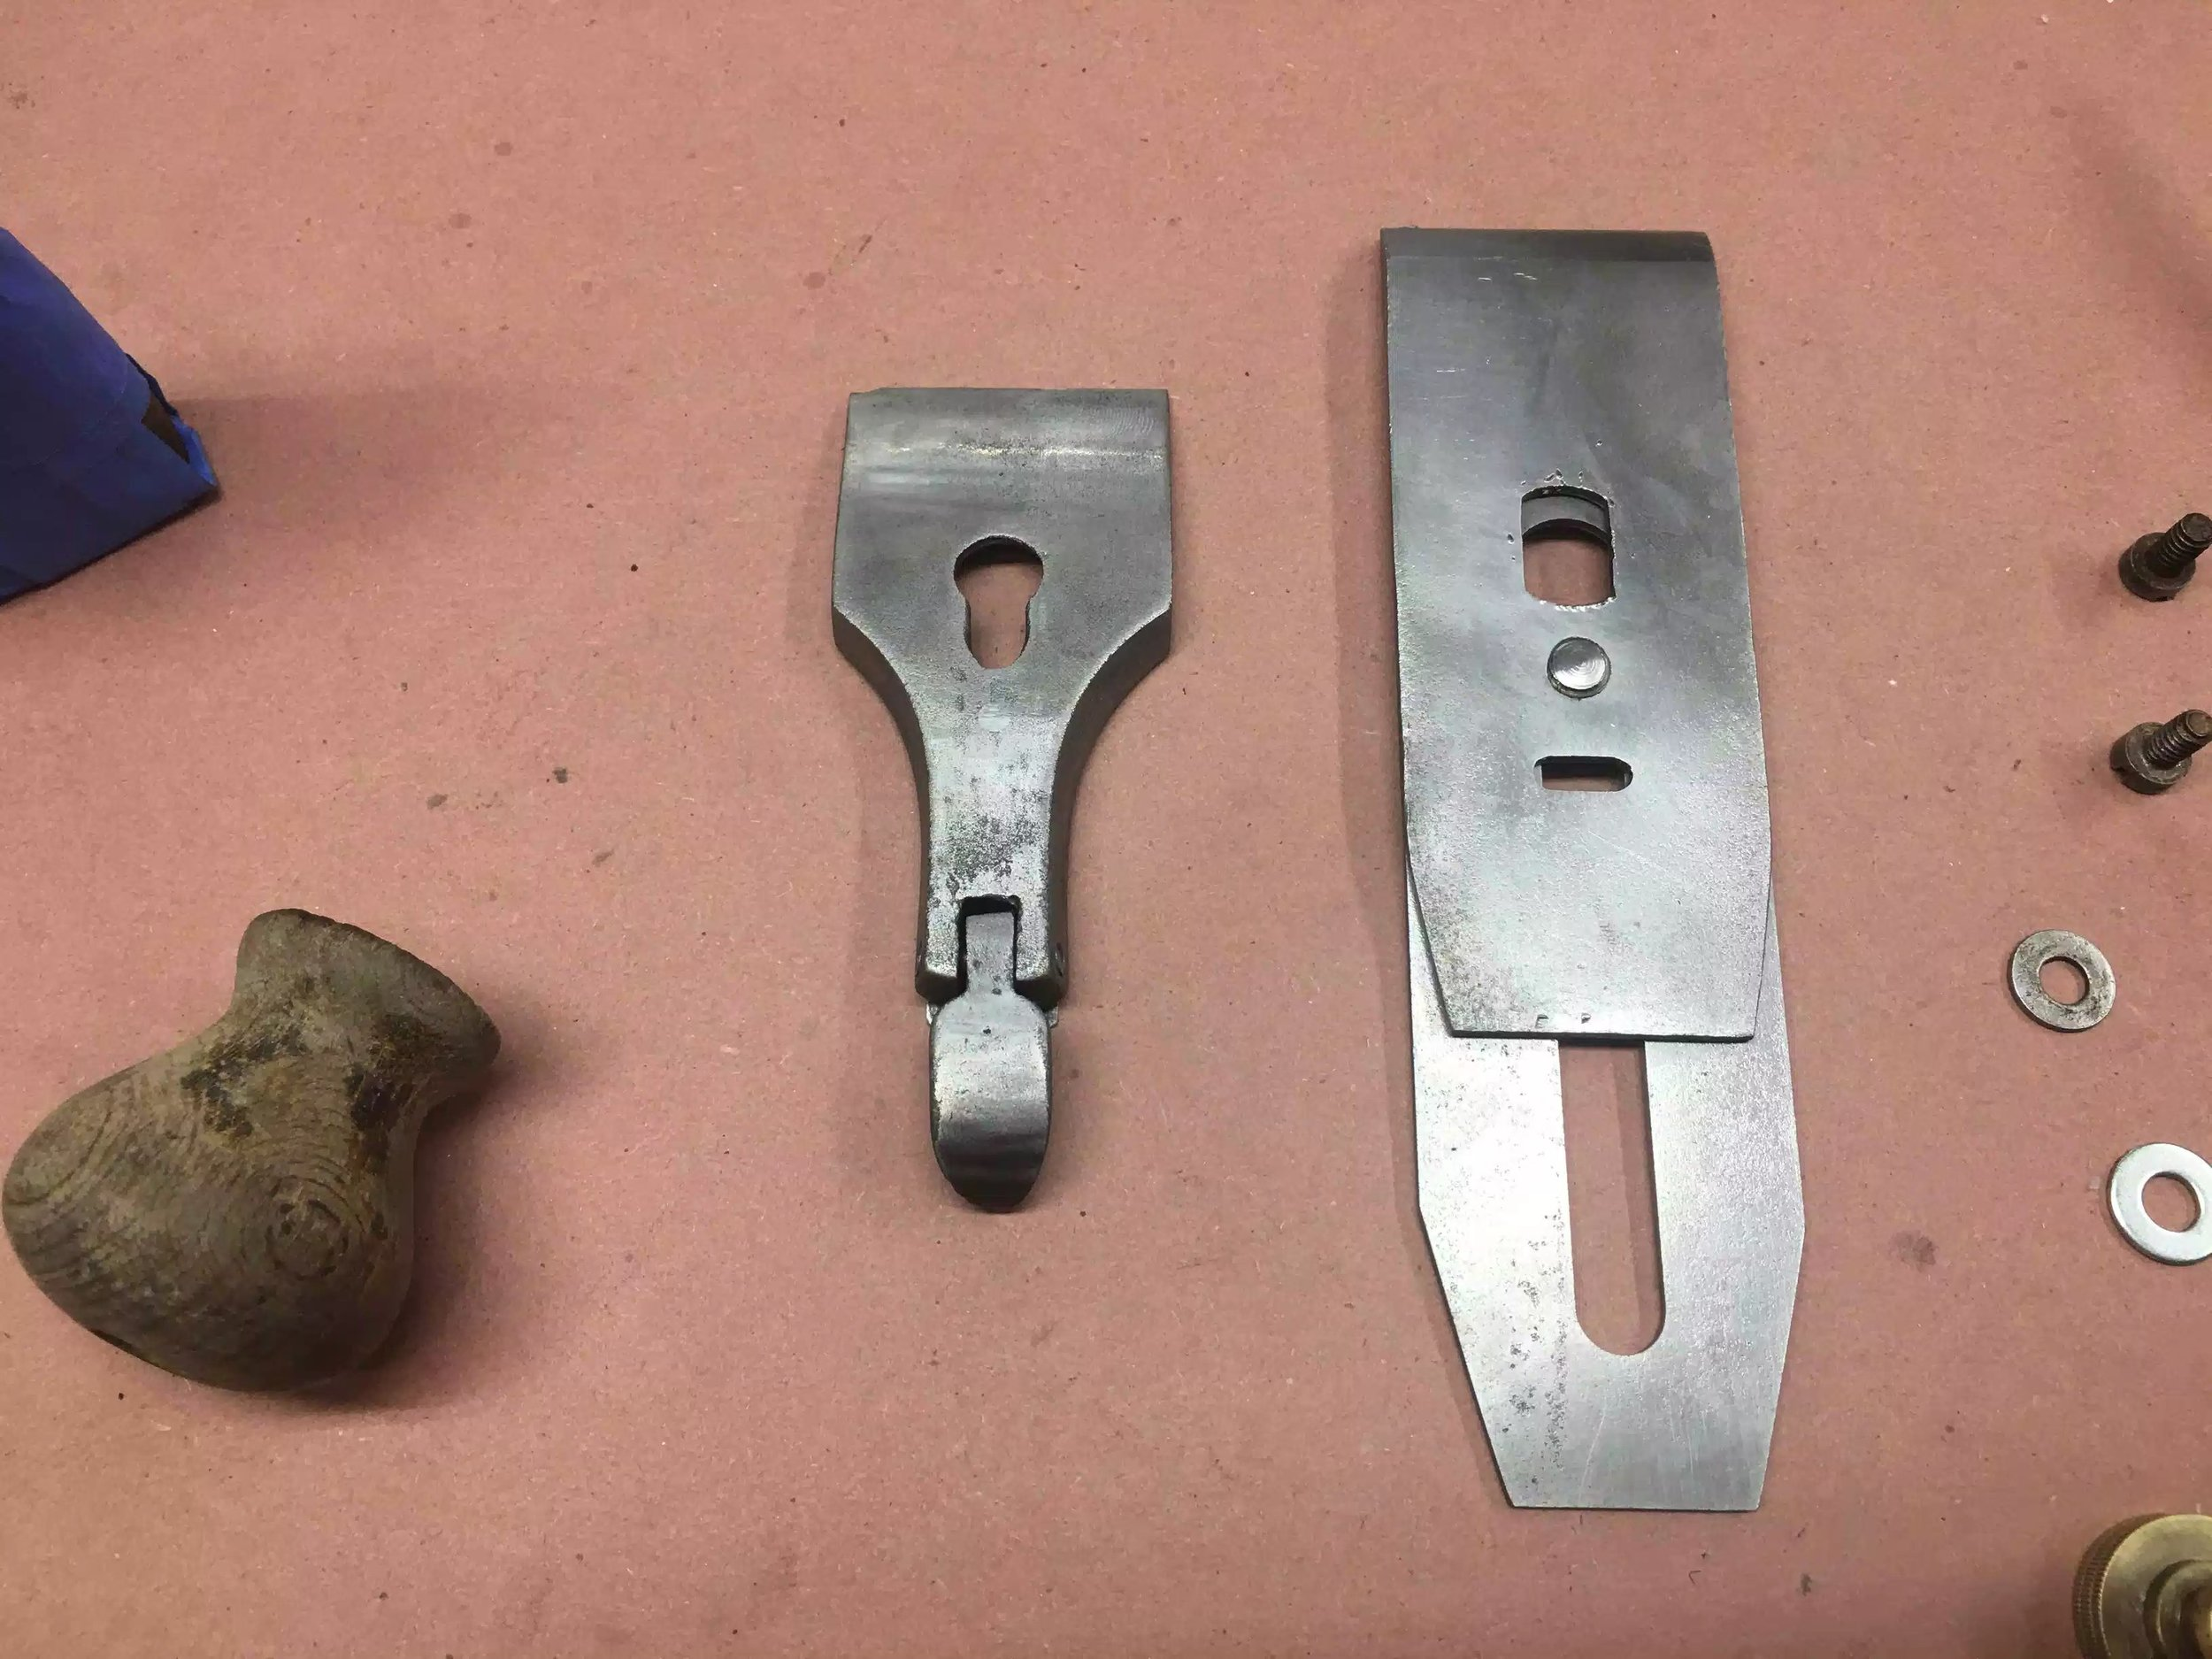 Plane Iron, Chip breaker and the lever cap